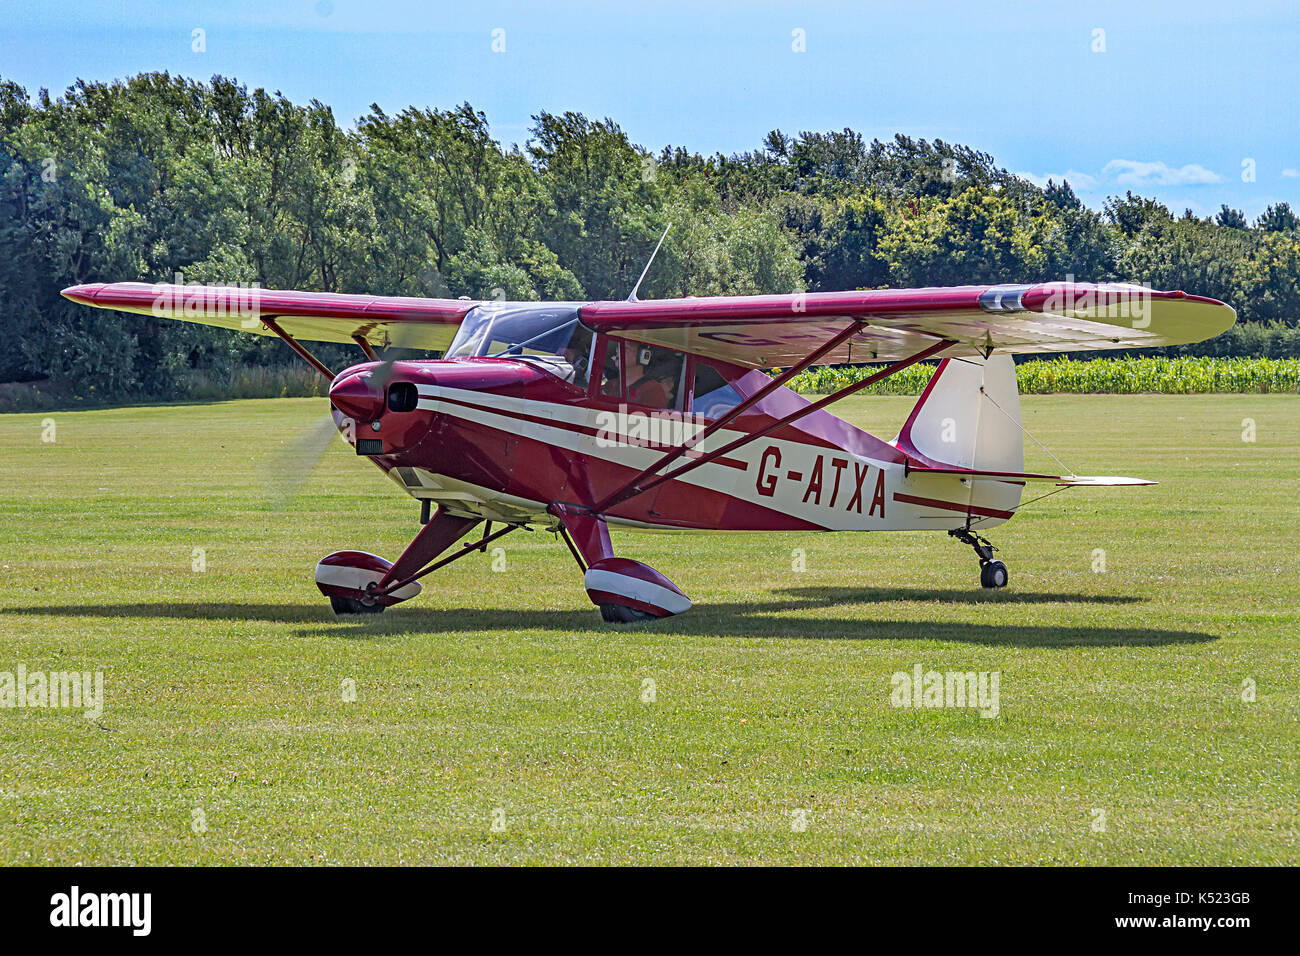 Simon Hildrop's 1956 Piper Tri-Pacer G-ATXA has been retrofitted with a kit tailwheel undercarriage. It is pictured taxying in at East Kirkby in 2015. - Stock Image